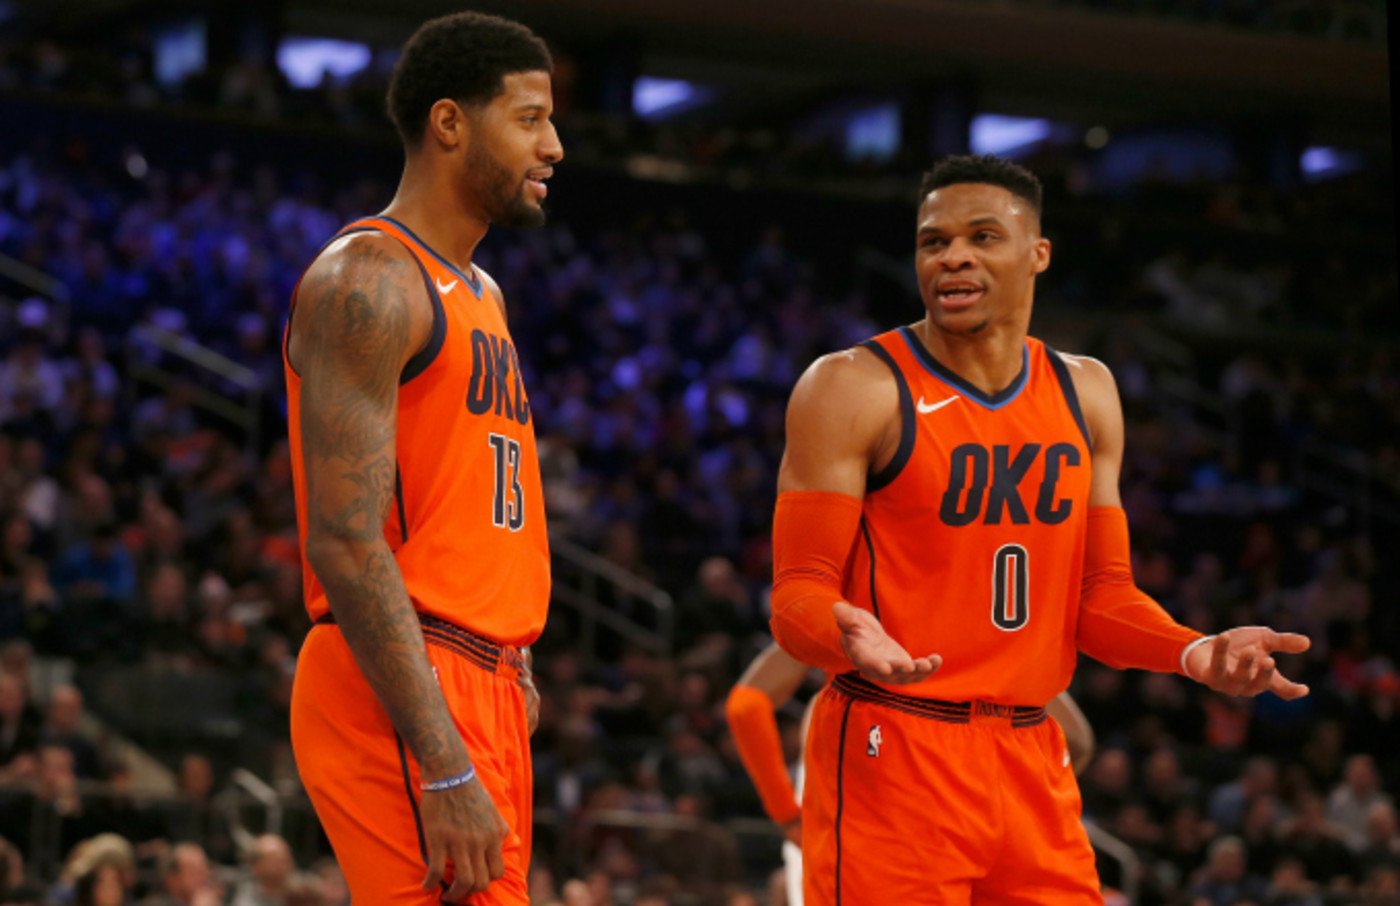 Paul George #13 and Russell Westbrook #0 of the Oklahoma City Thunder